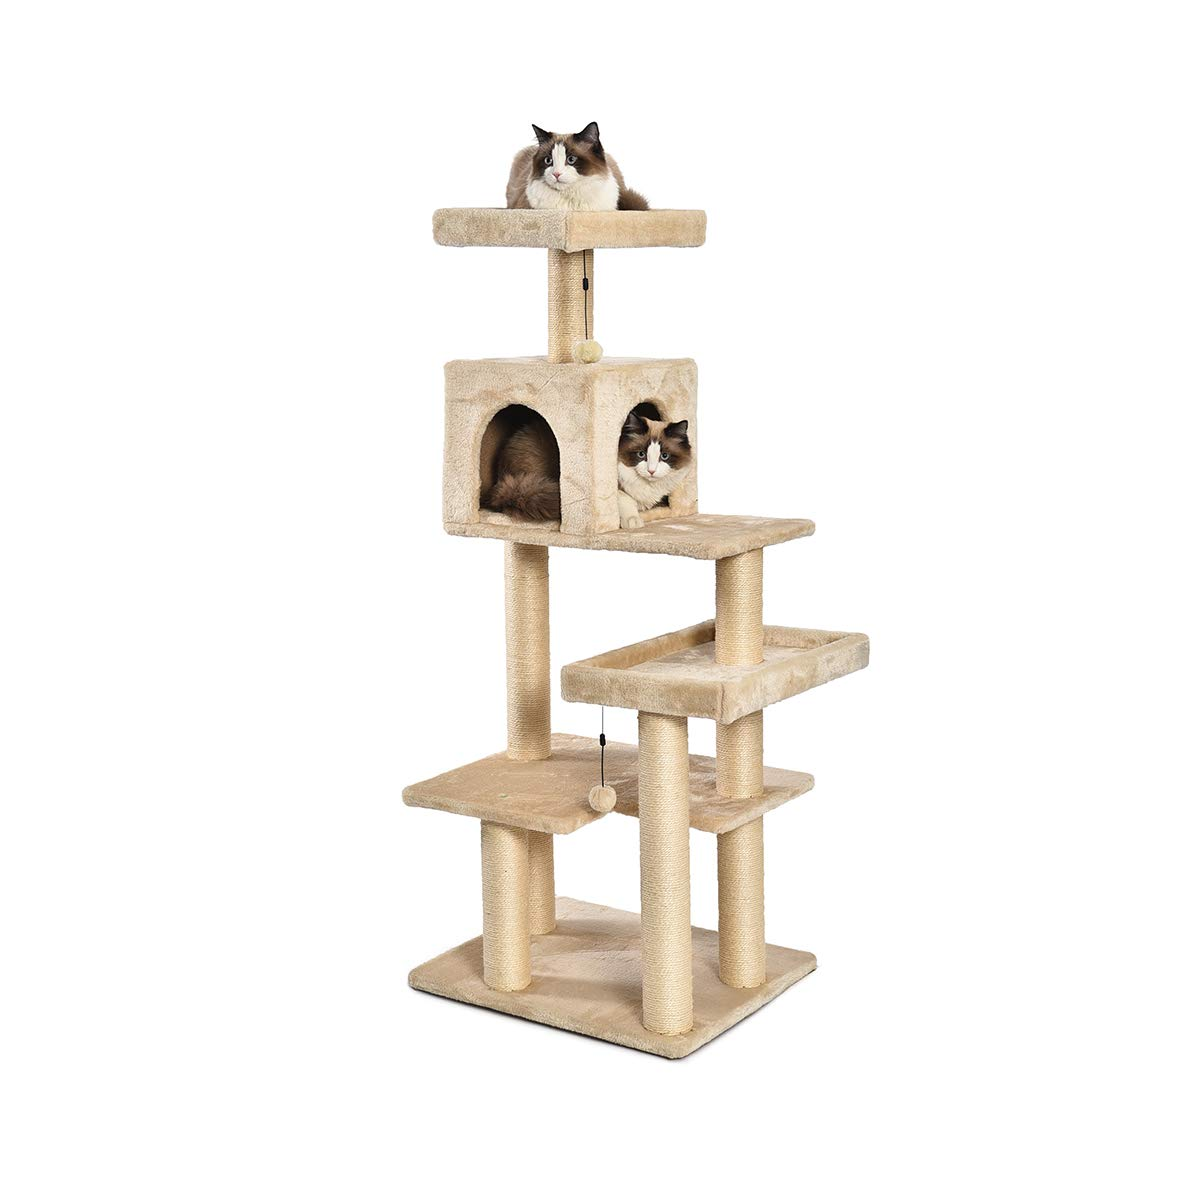 AmazonBasics Extra Large Cat Tree Tower with Condo - 24 x 56 x 19 Inches, Beige by AmazonBasics